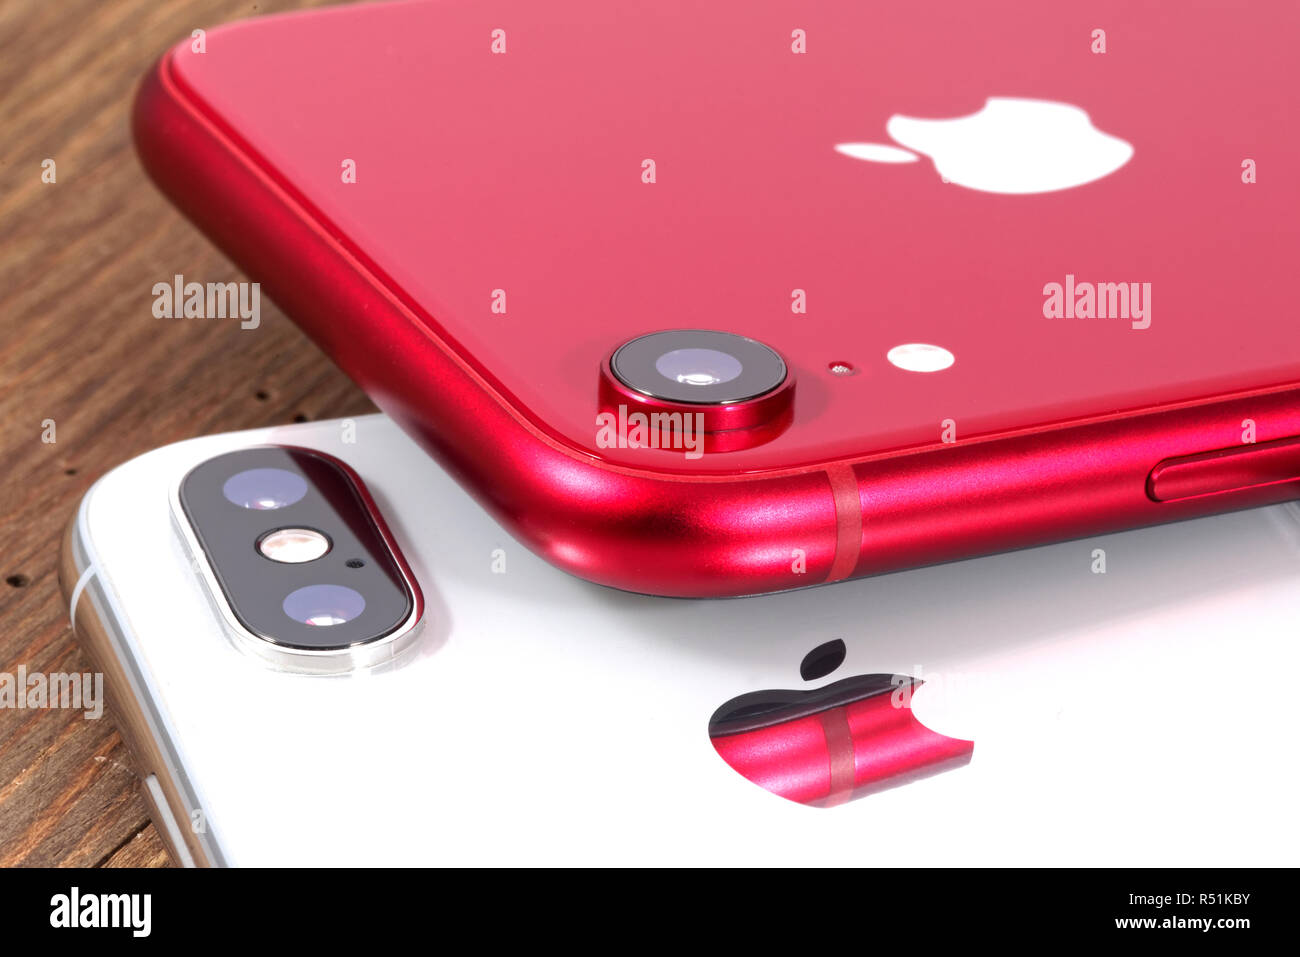 Koszalin, Poland – November 29, 2018: Silver iPhone Xs and red iPhone XR. The iPhone Xs and iPhone XR is smart phone with multi touch screen produced - Stock Image